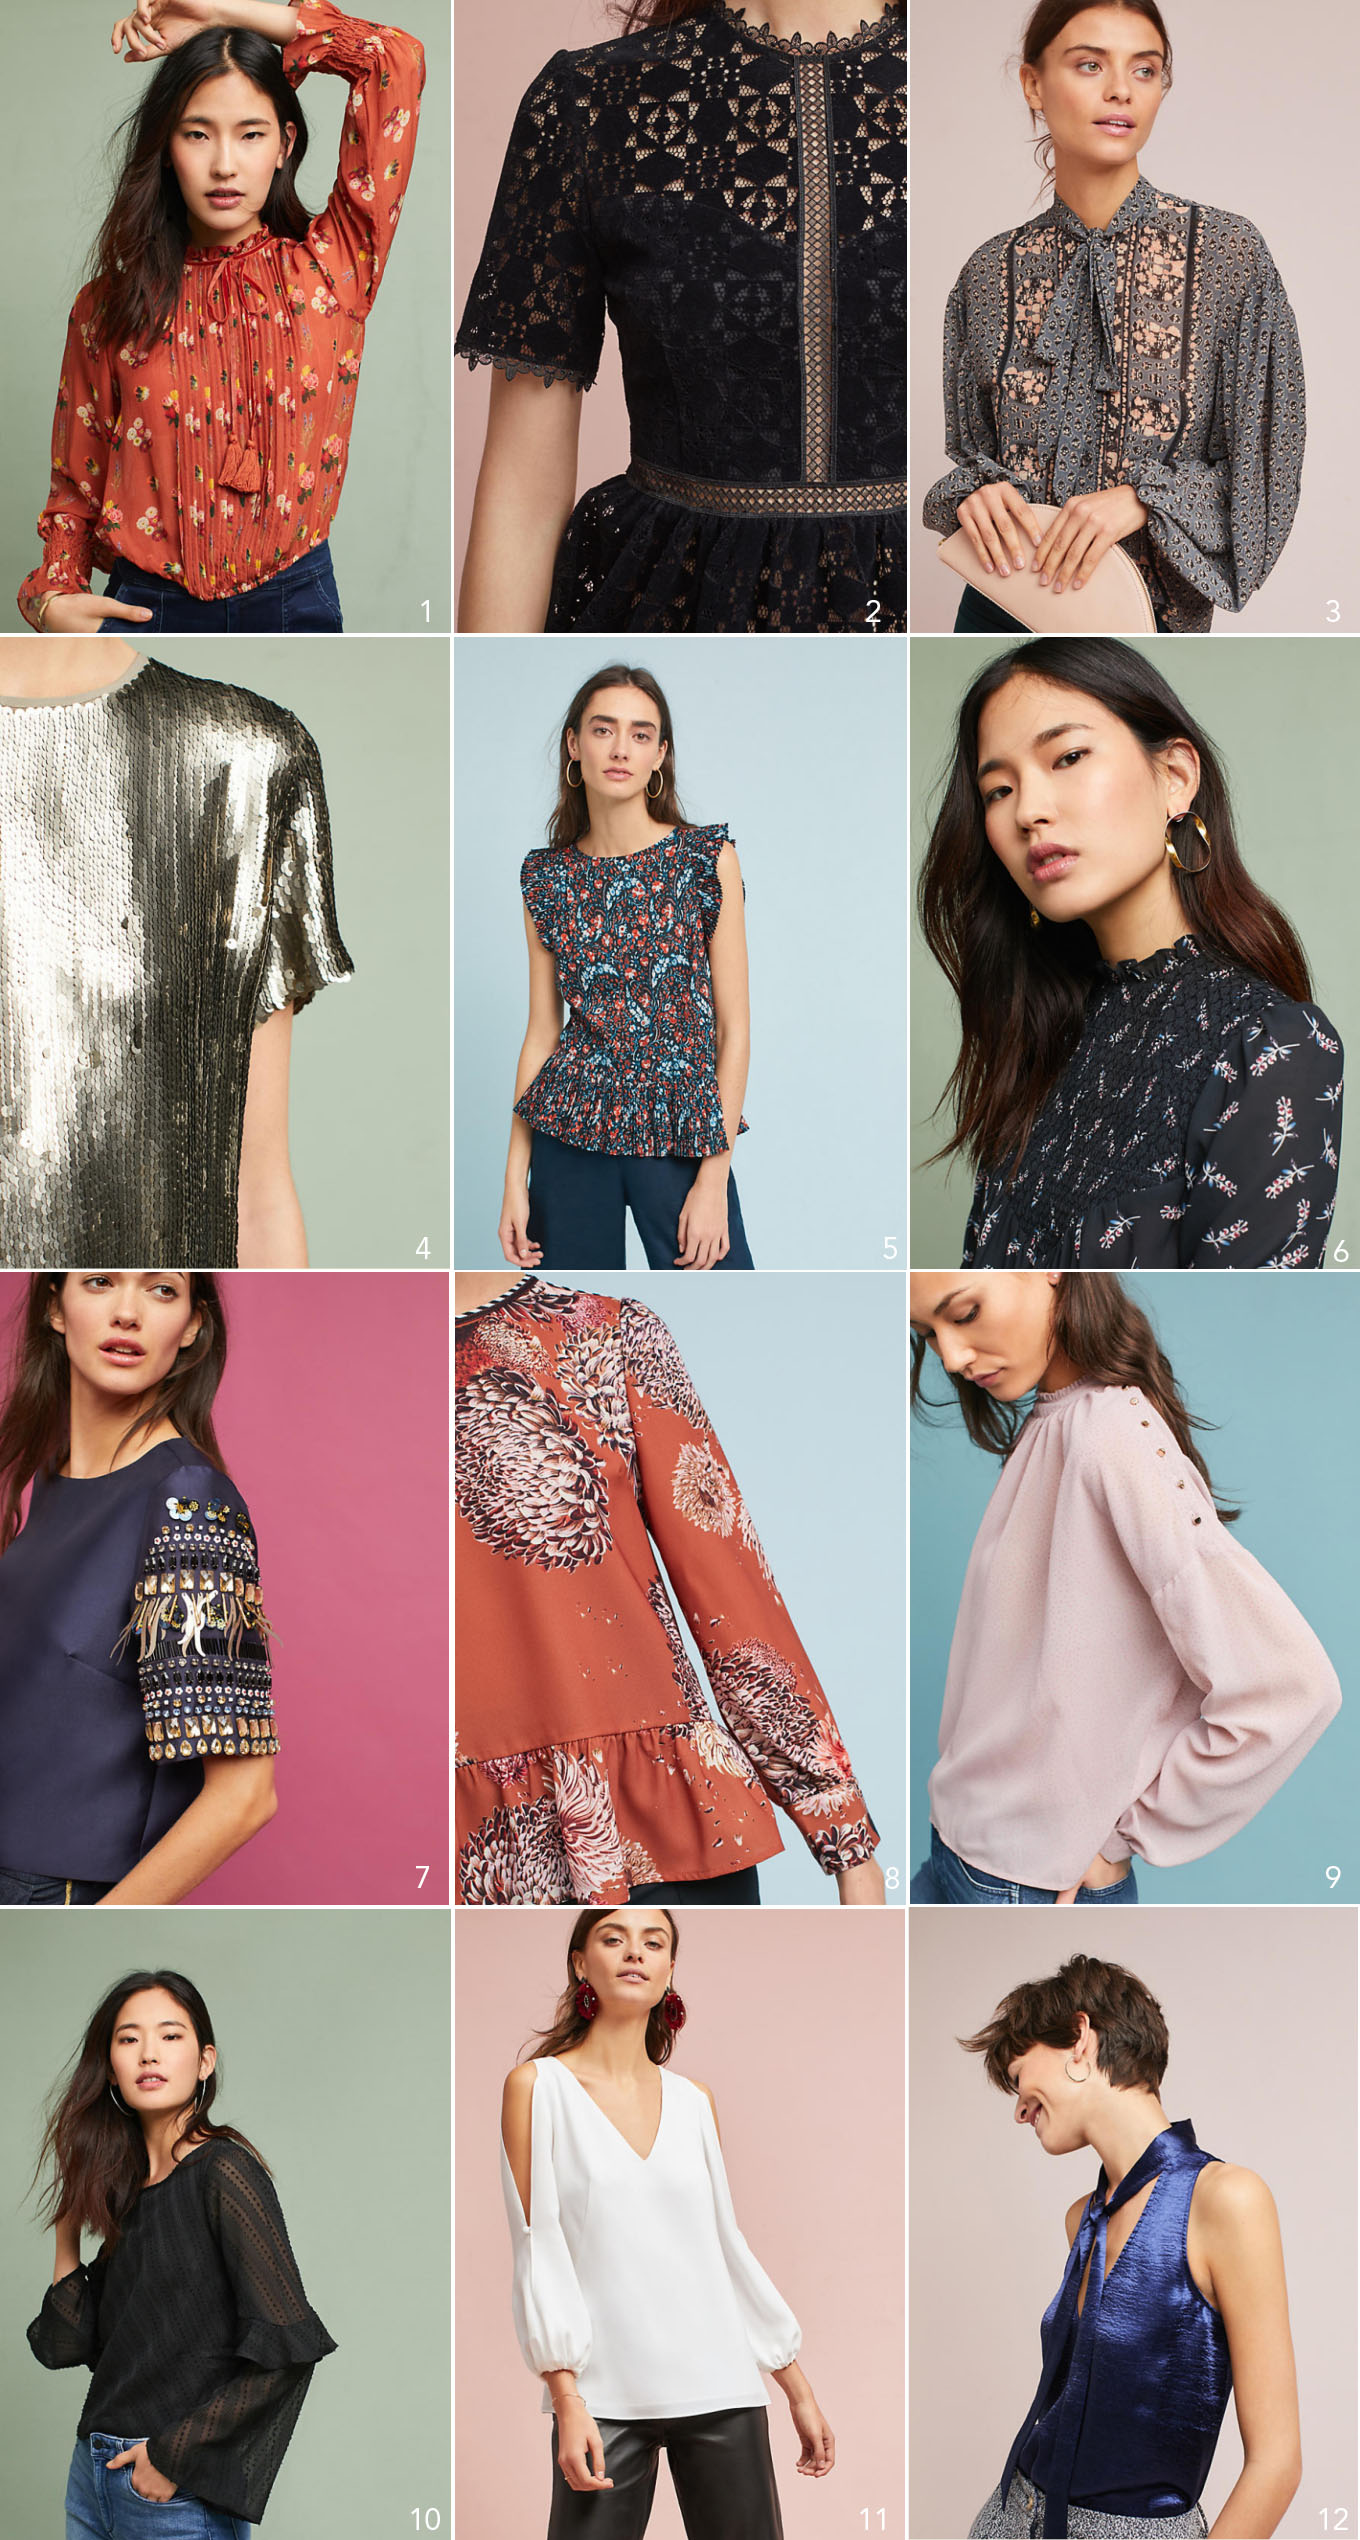 Looking for blouses to work with her neutral wardrobe, Ridgely Brode starts browsing Anthropolgie for ideas on her blog Ridgely's Radar.